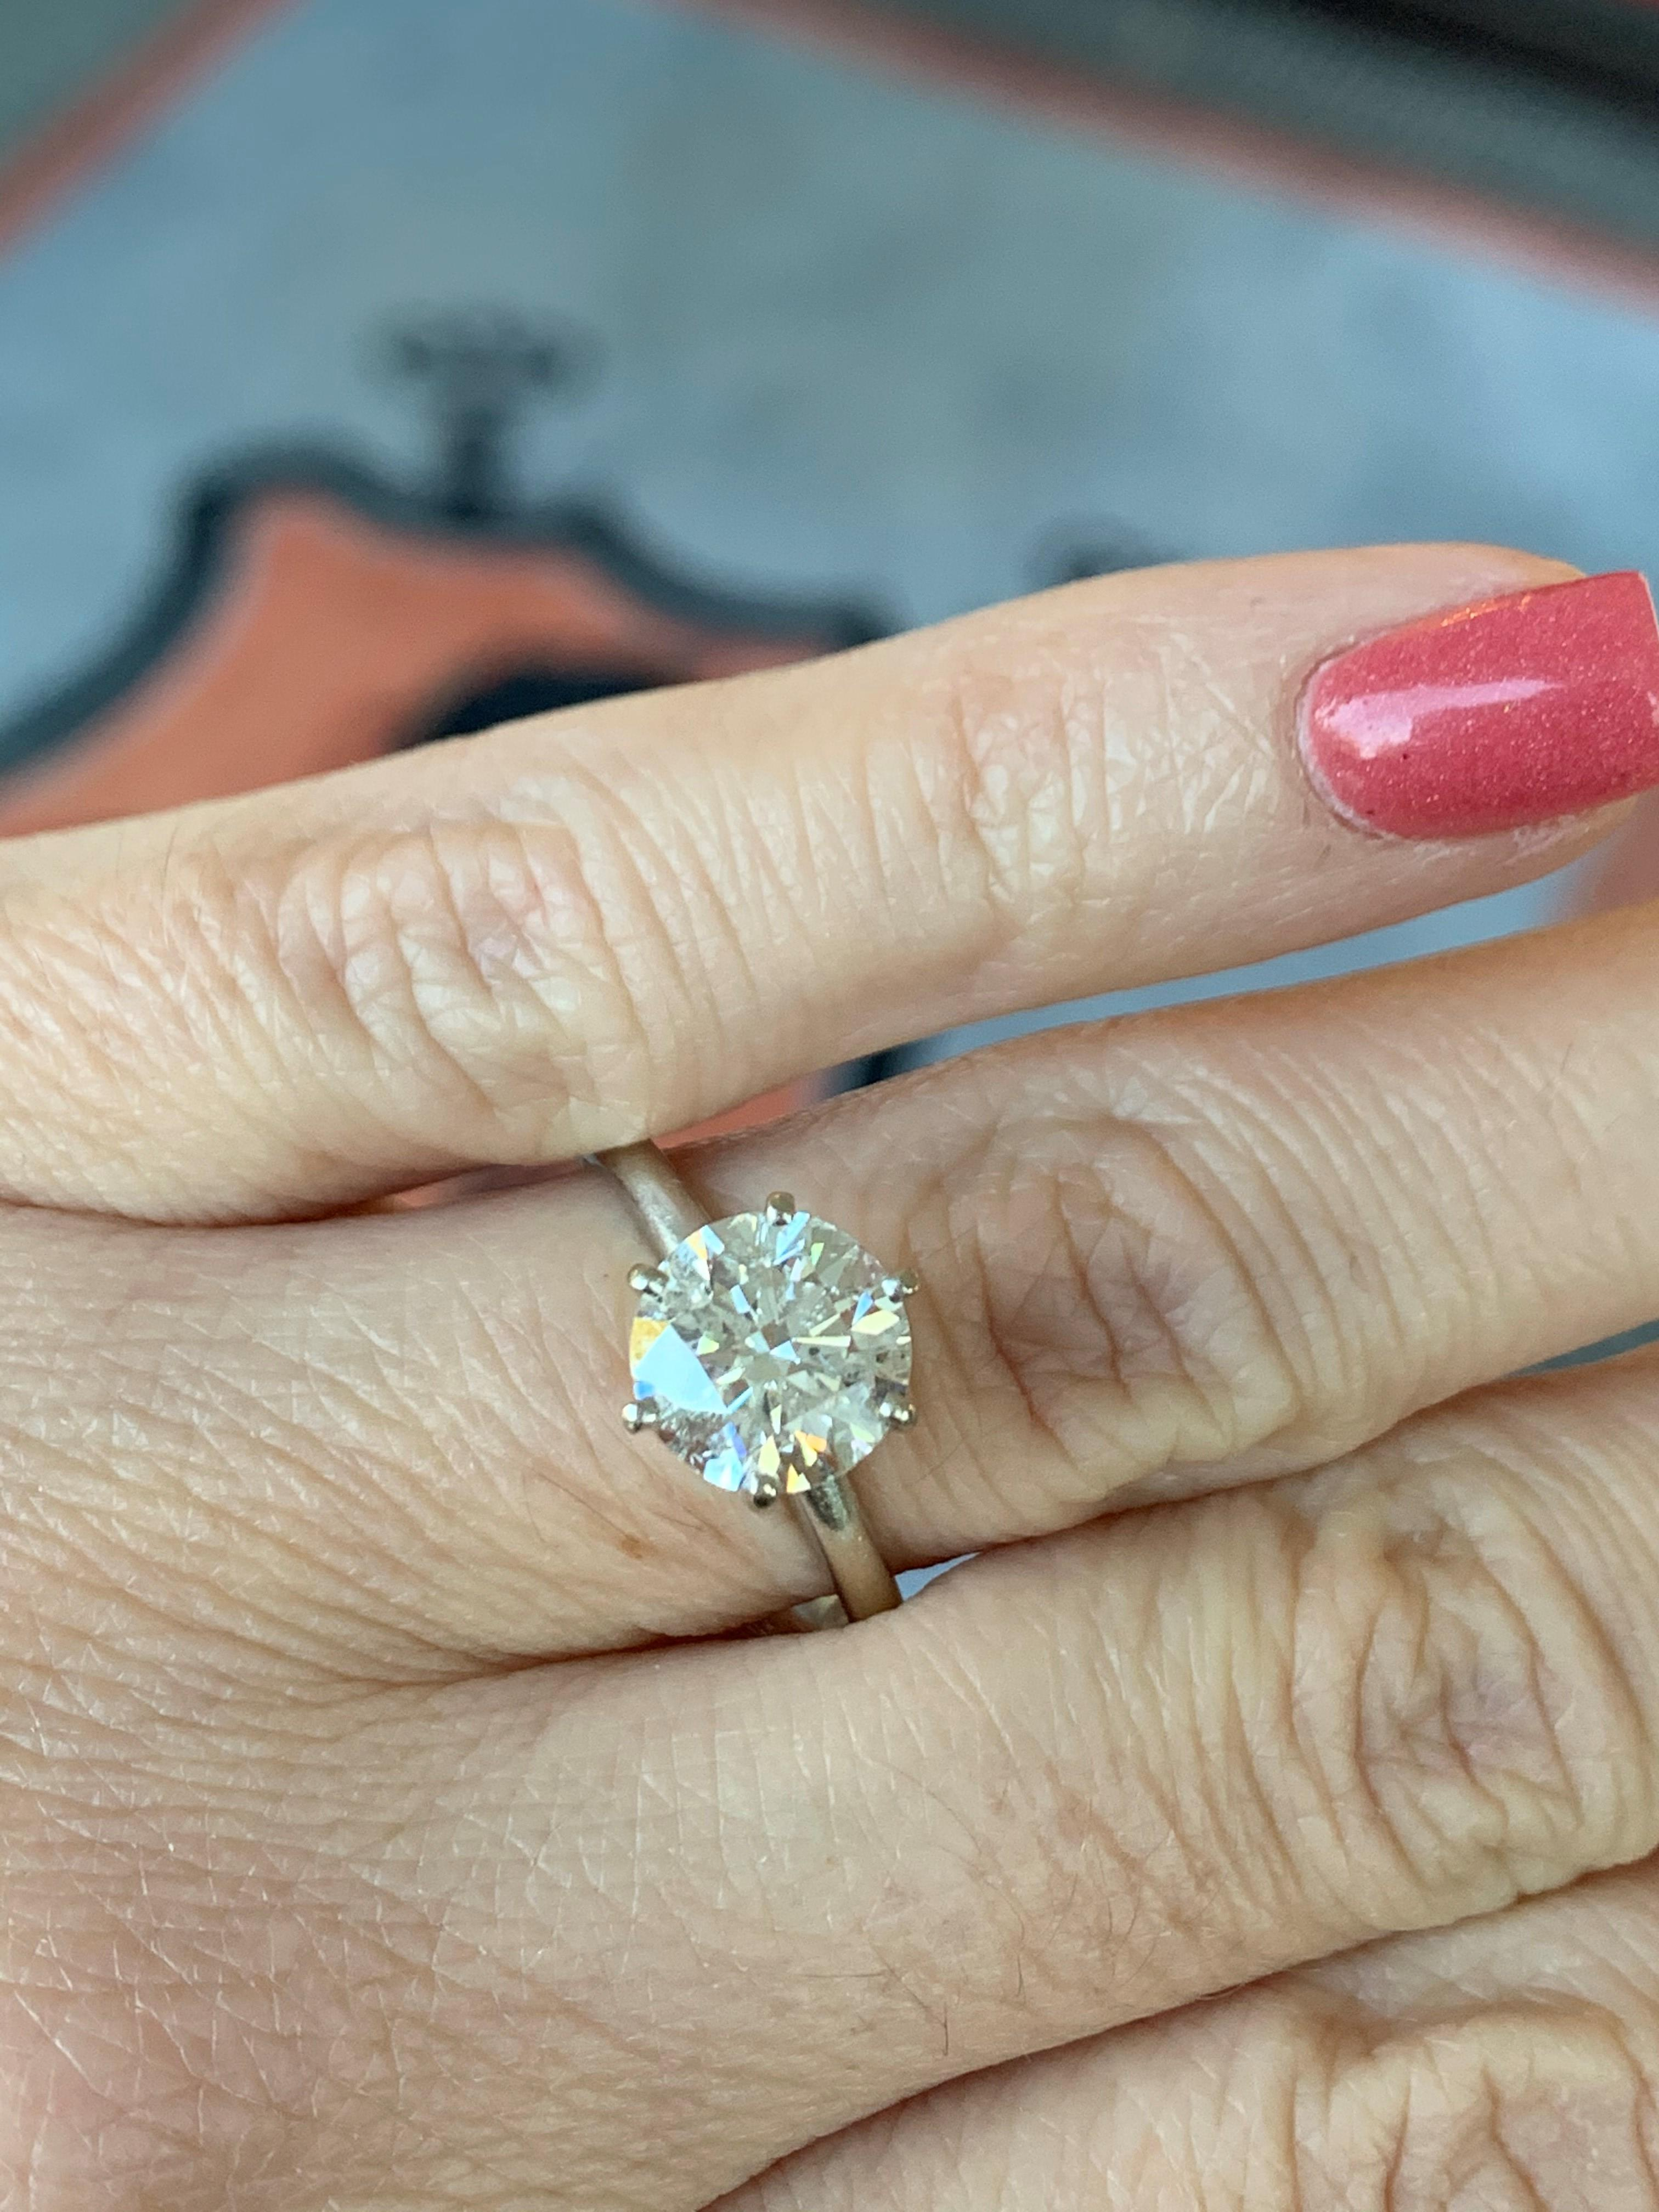 Tiffany Style 2 Carat Round Diamond Solitaire Engagement Ring Set In 14k White Gold I Do Now I Don T